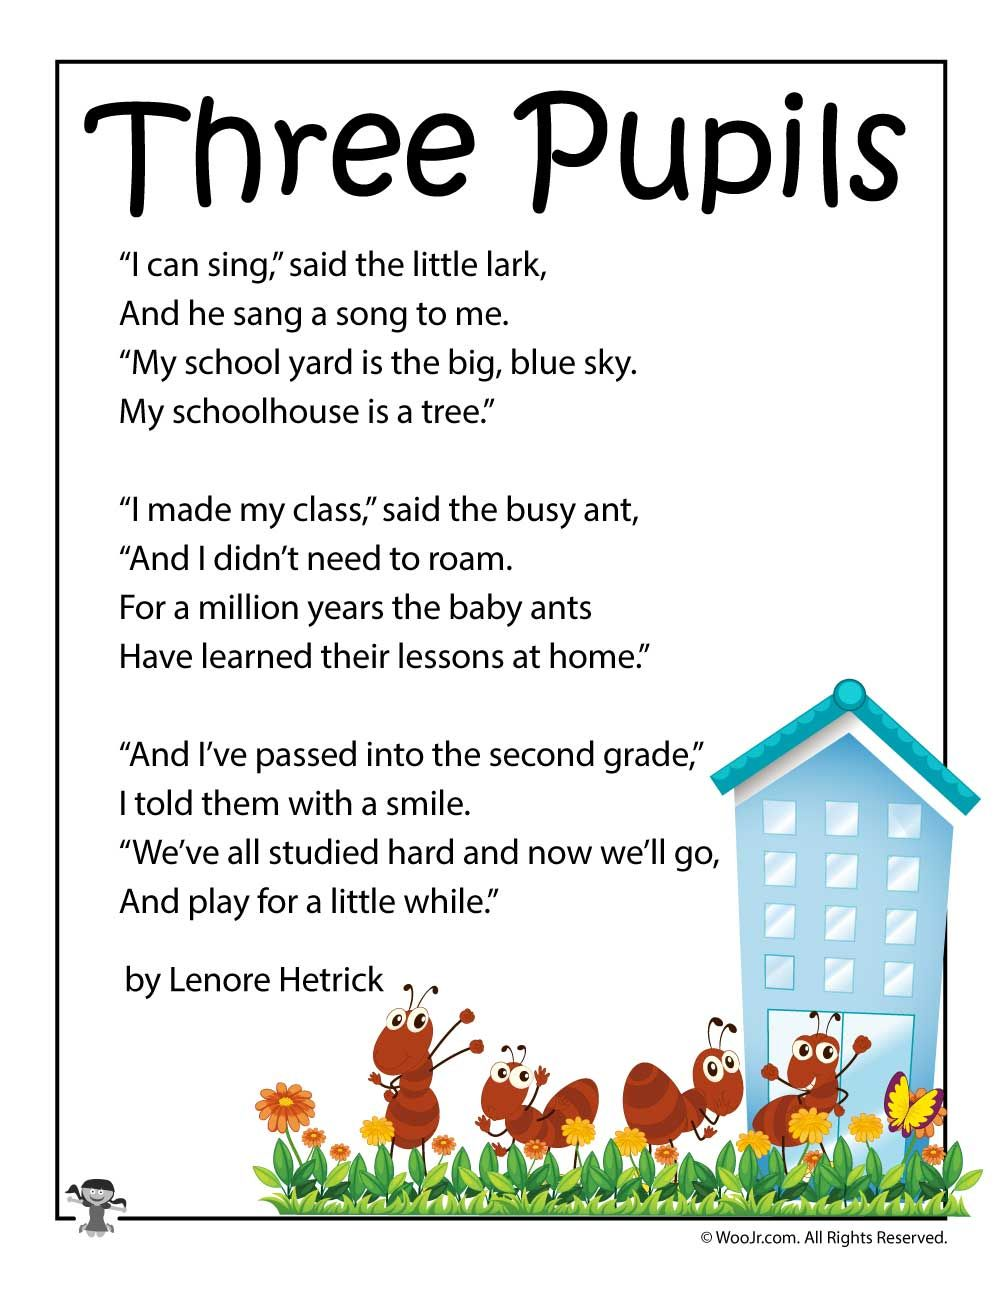 Best Three Pupils School Poetry for Kids | Woo! Jr. Kids Activities Short Poems For Kids Today From woojr.com